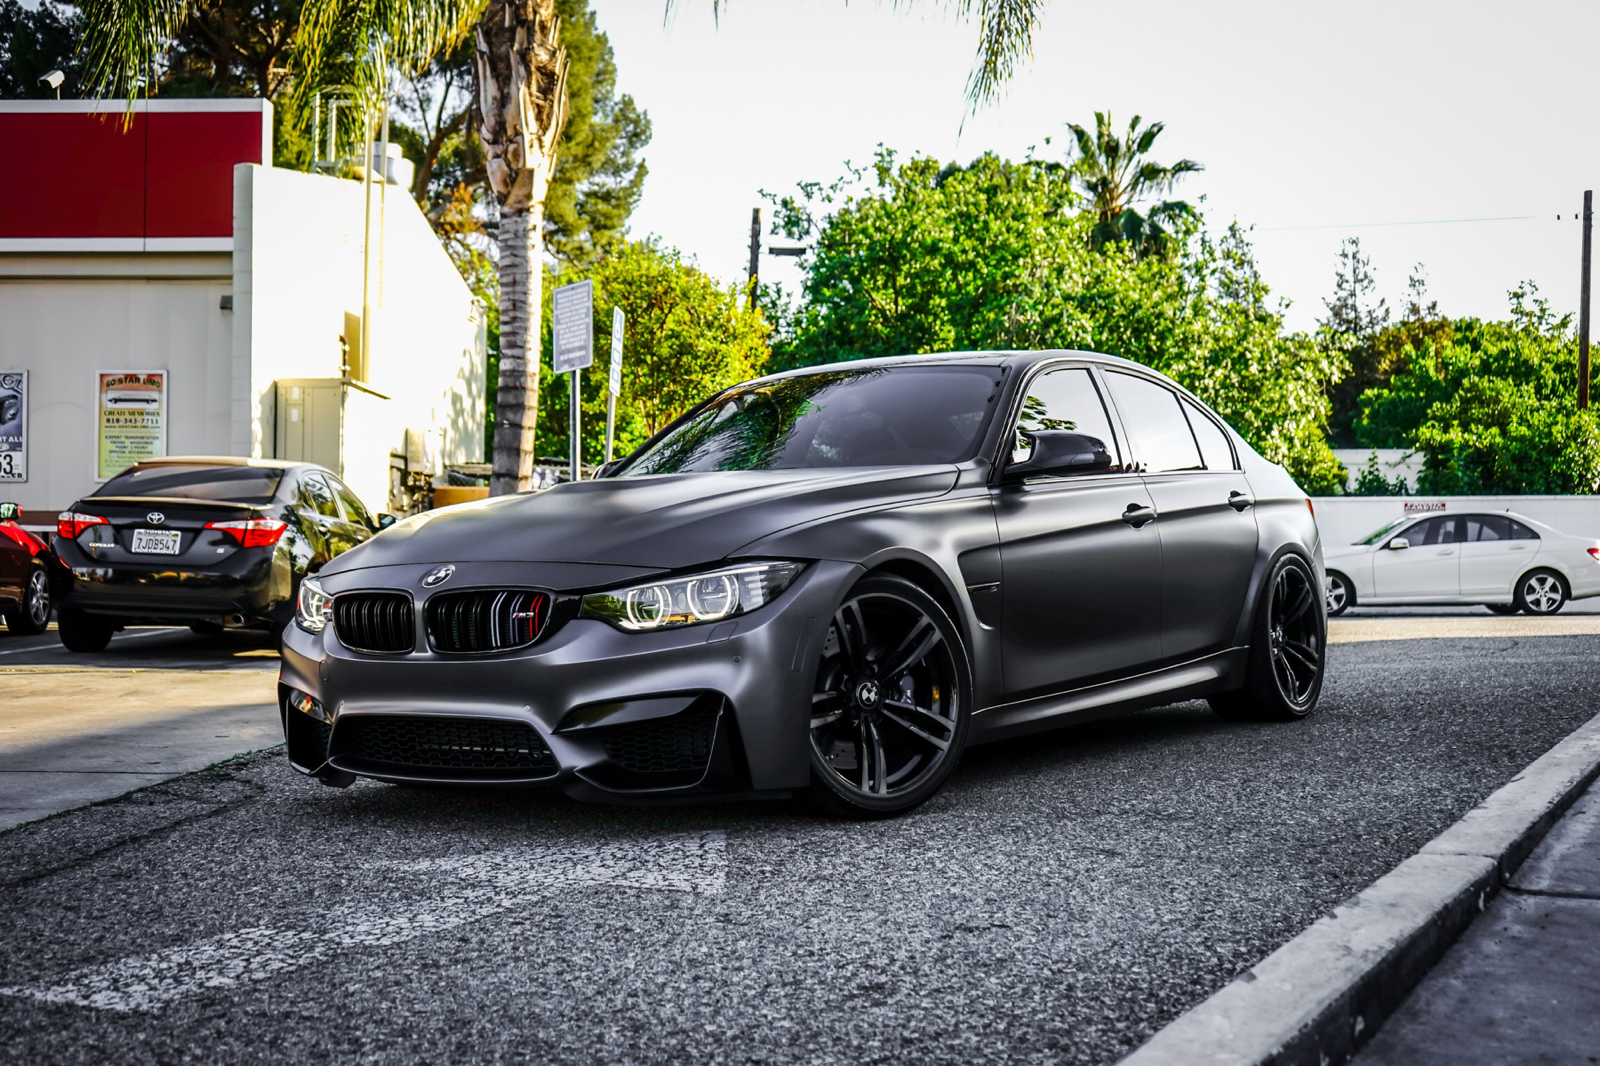 bmw m3 and bmw m4 forum view single post sold 39 gr3mlin 39 satin mineral grey m3 build thread. Black Bedroom Furniture Sets. Home Design Ideas